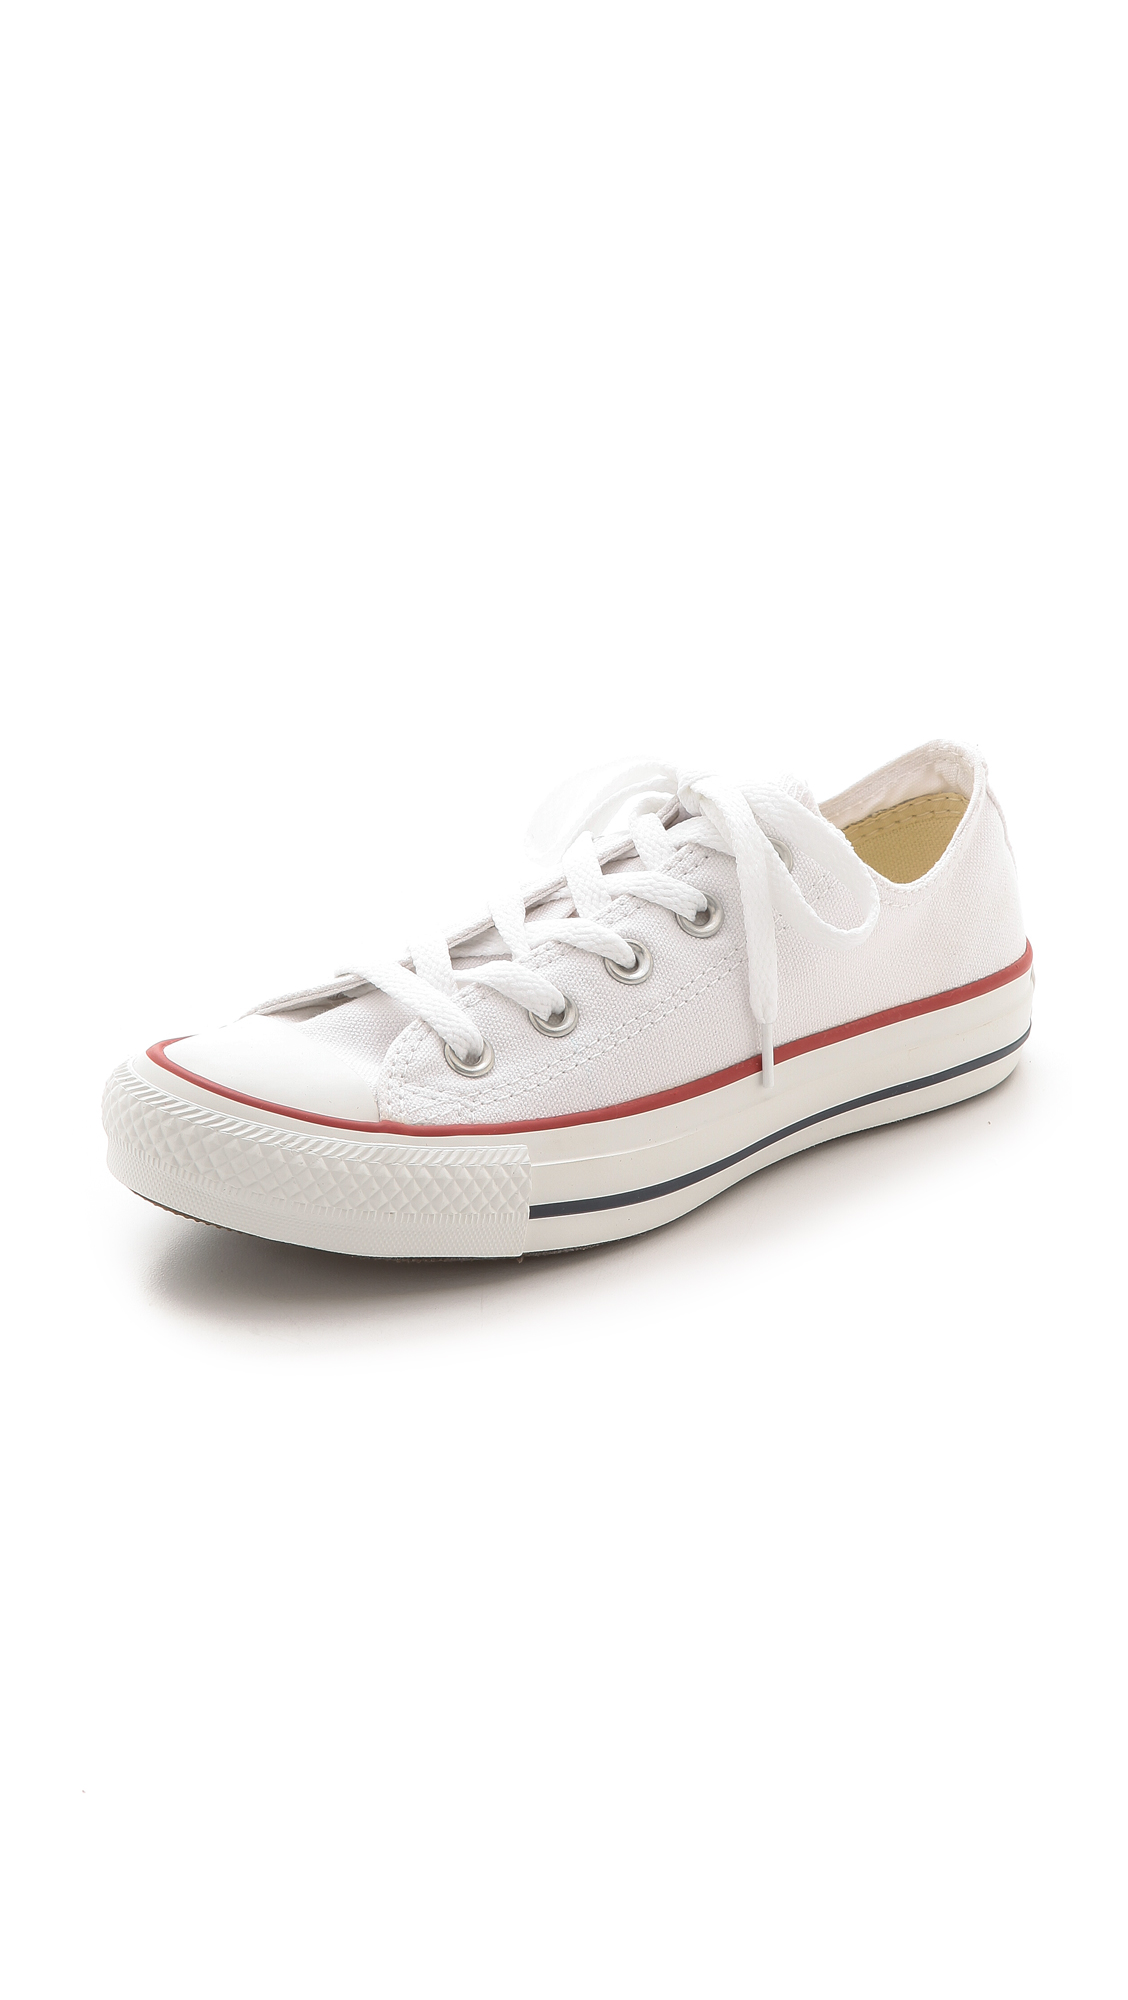 CHUCK TAYLOR ALL STAR SHORELINE SLIP ON SNEAKERS